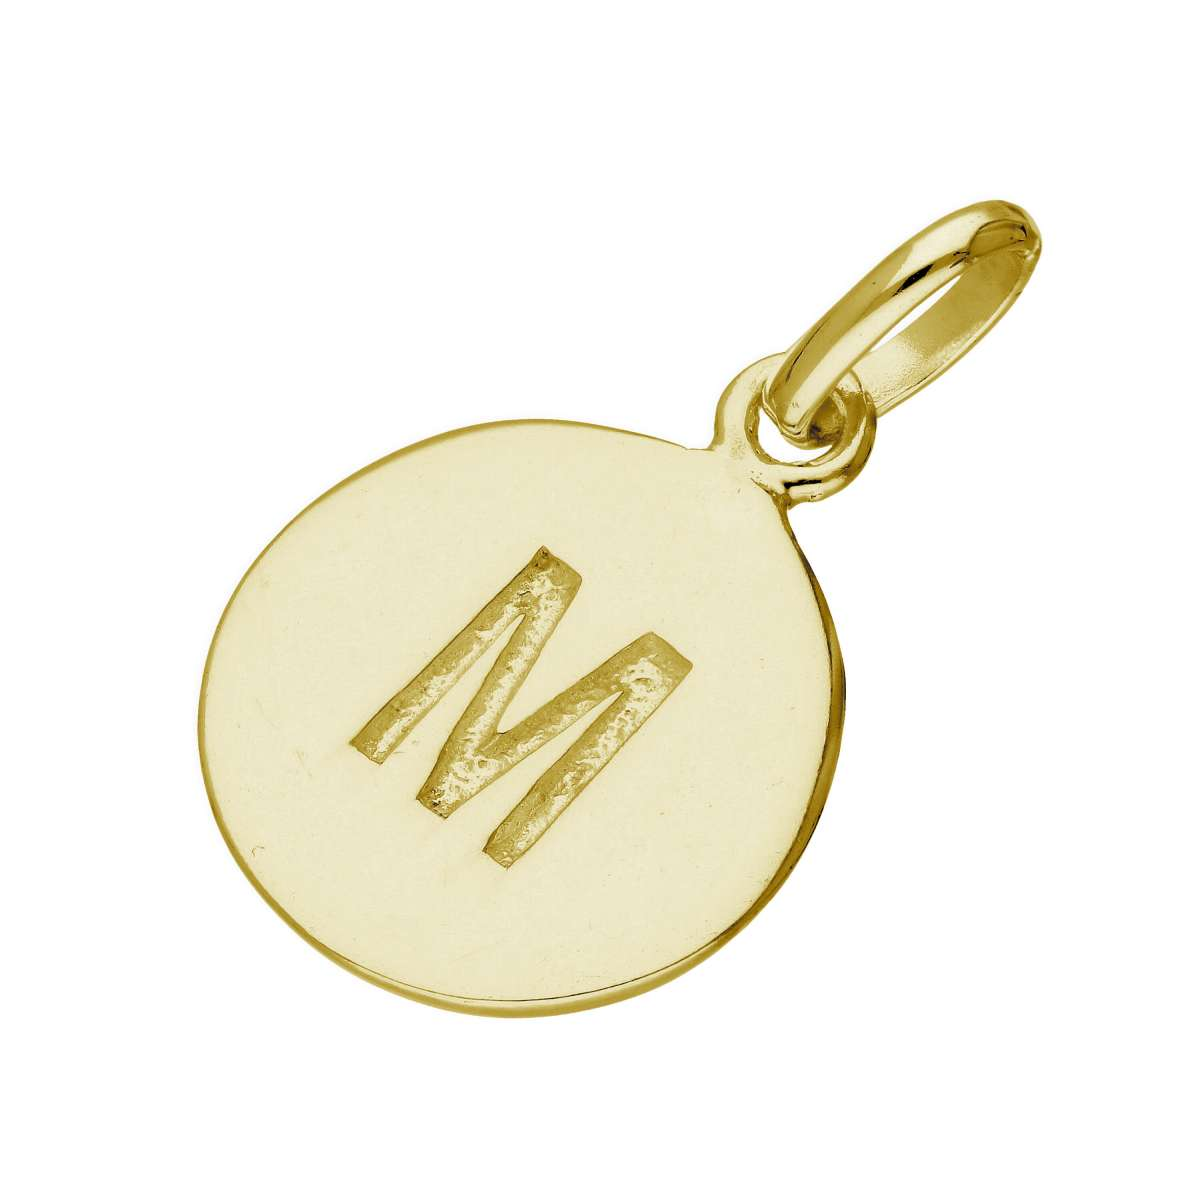 Alterative image for Gold Plated Sterling Silver Engravable Letter M Charm